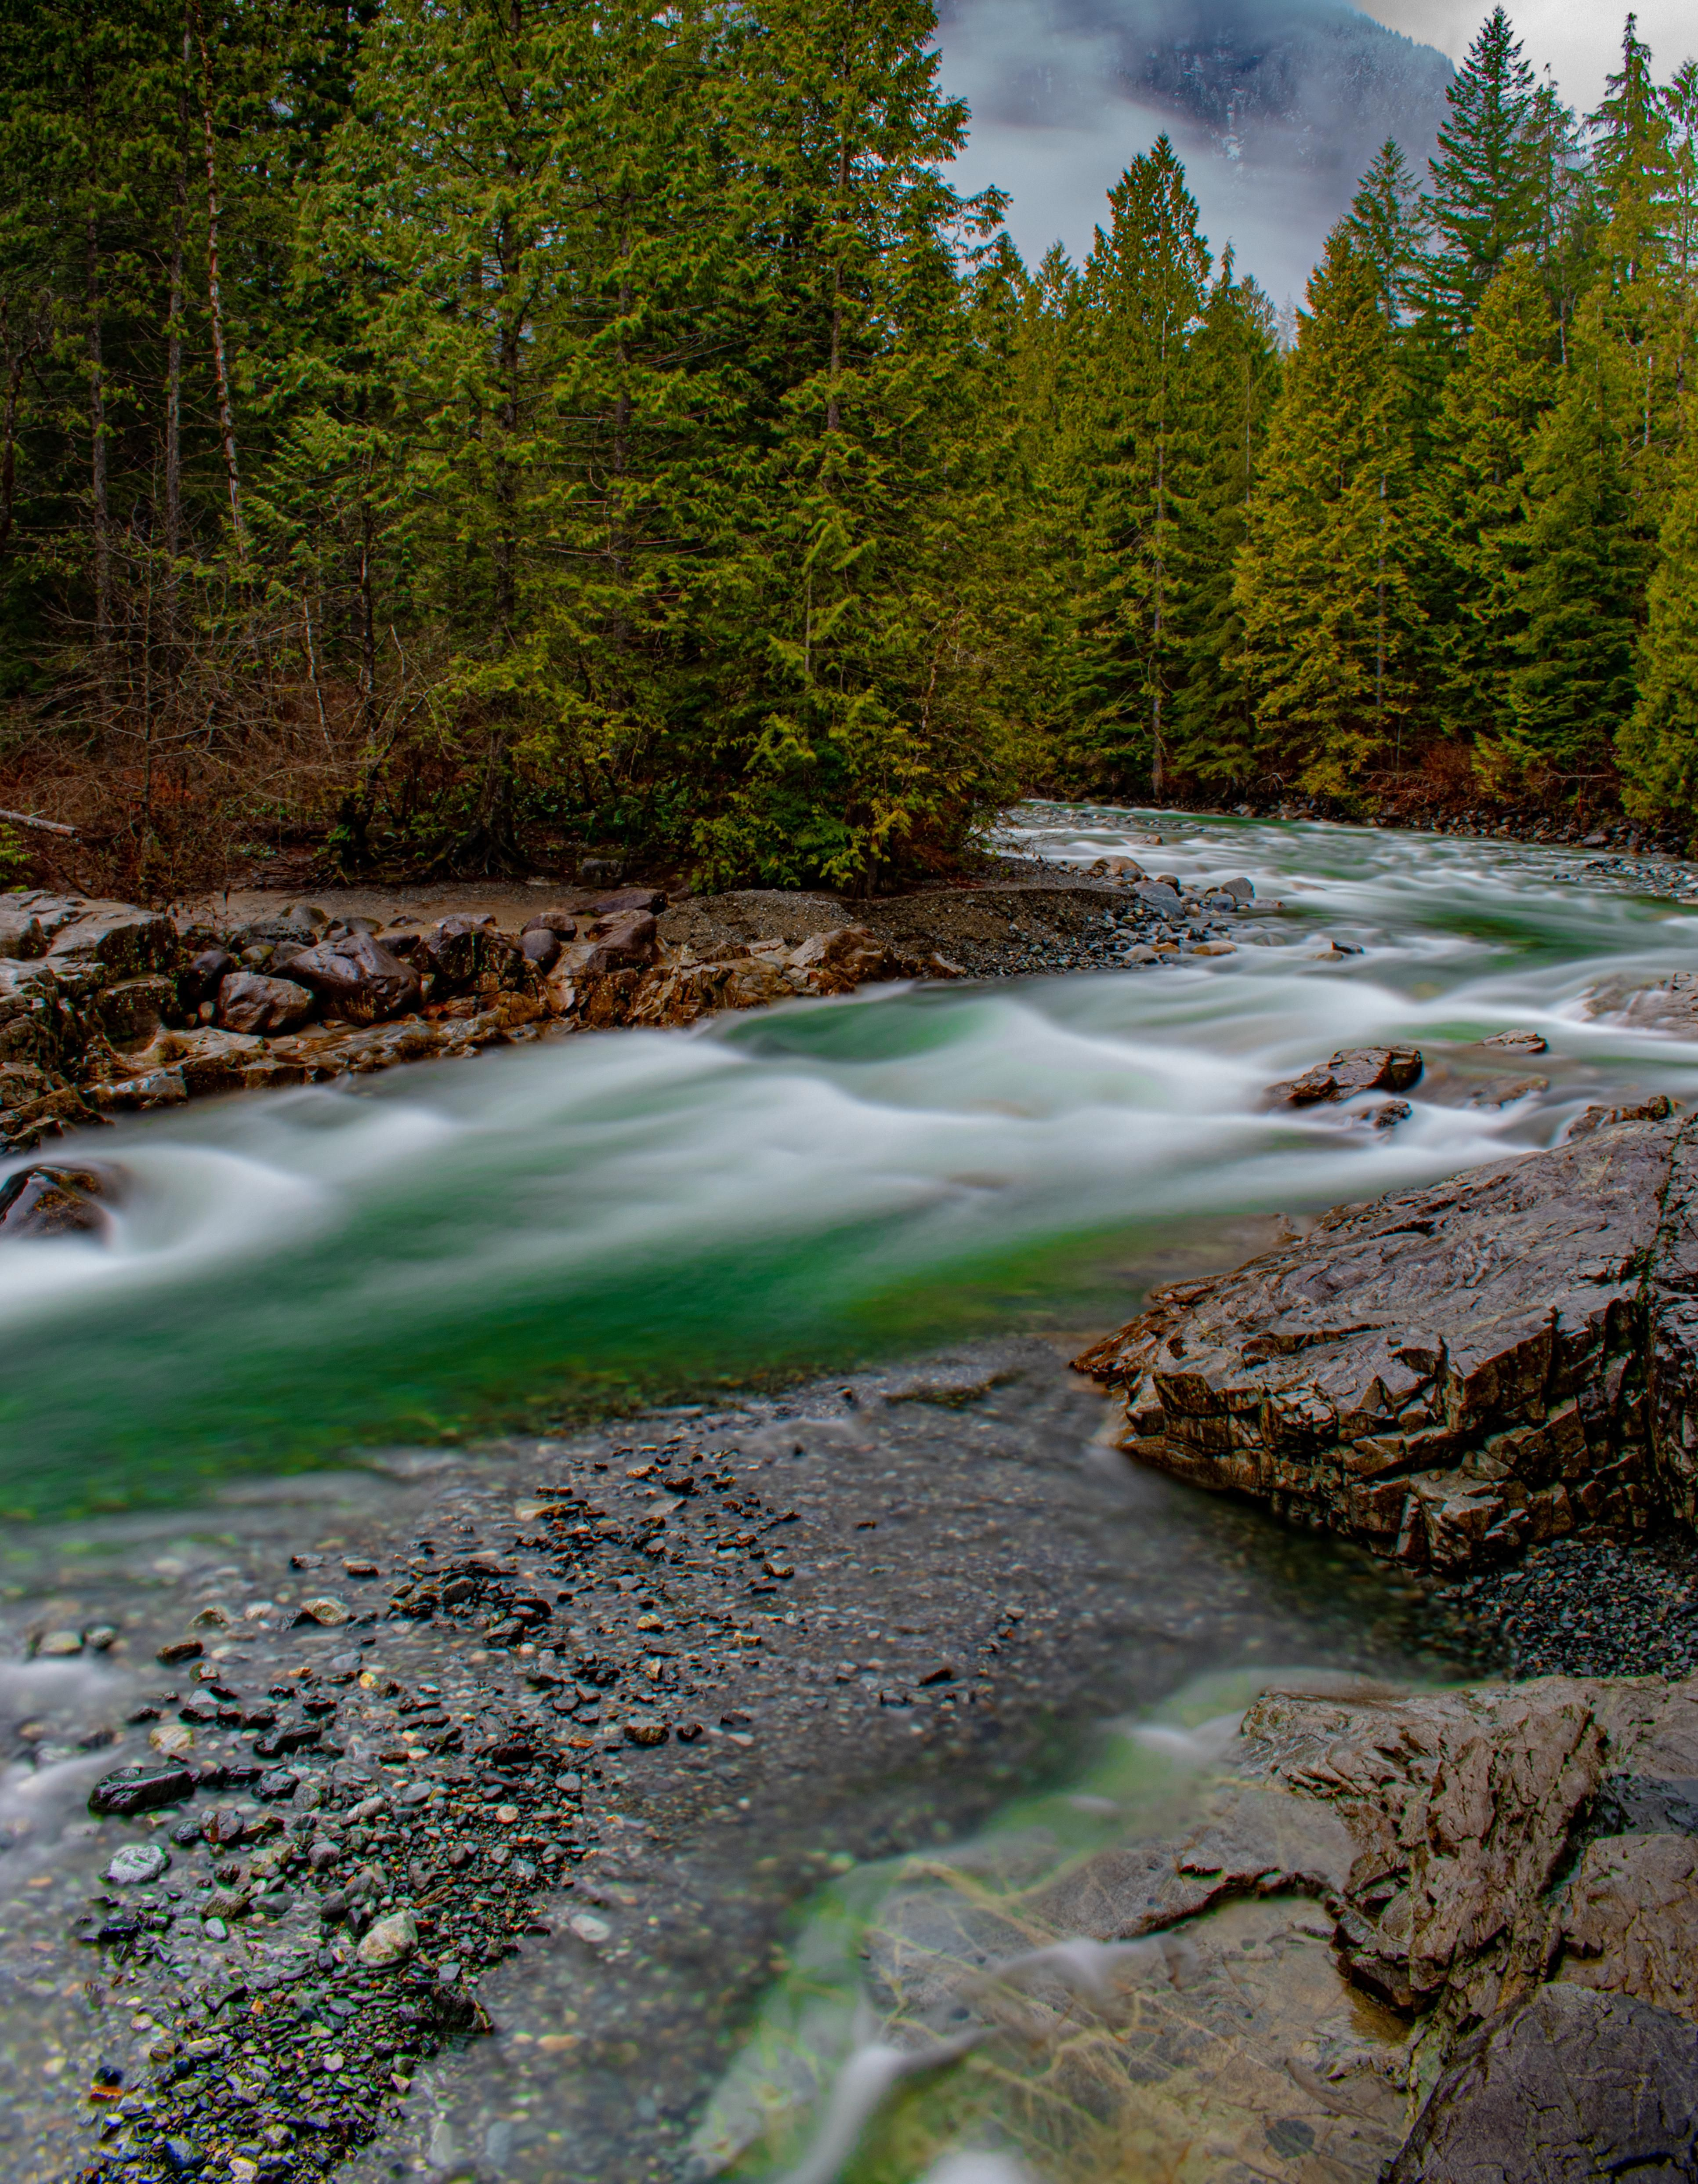 Beautiful emerald waters. Gold Creek Golden Ears Provincial Park British Columbia Canada. #hiking #camping #outdoors #nature #travel #backpacking #adventure #marmot #outdoor #mountains #photography